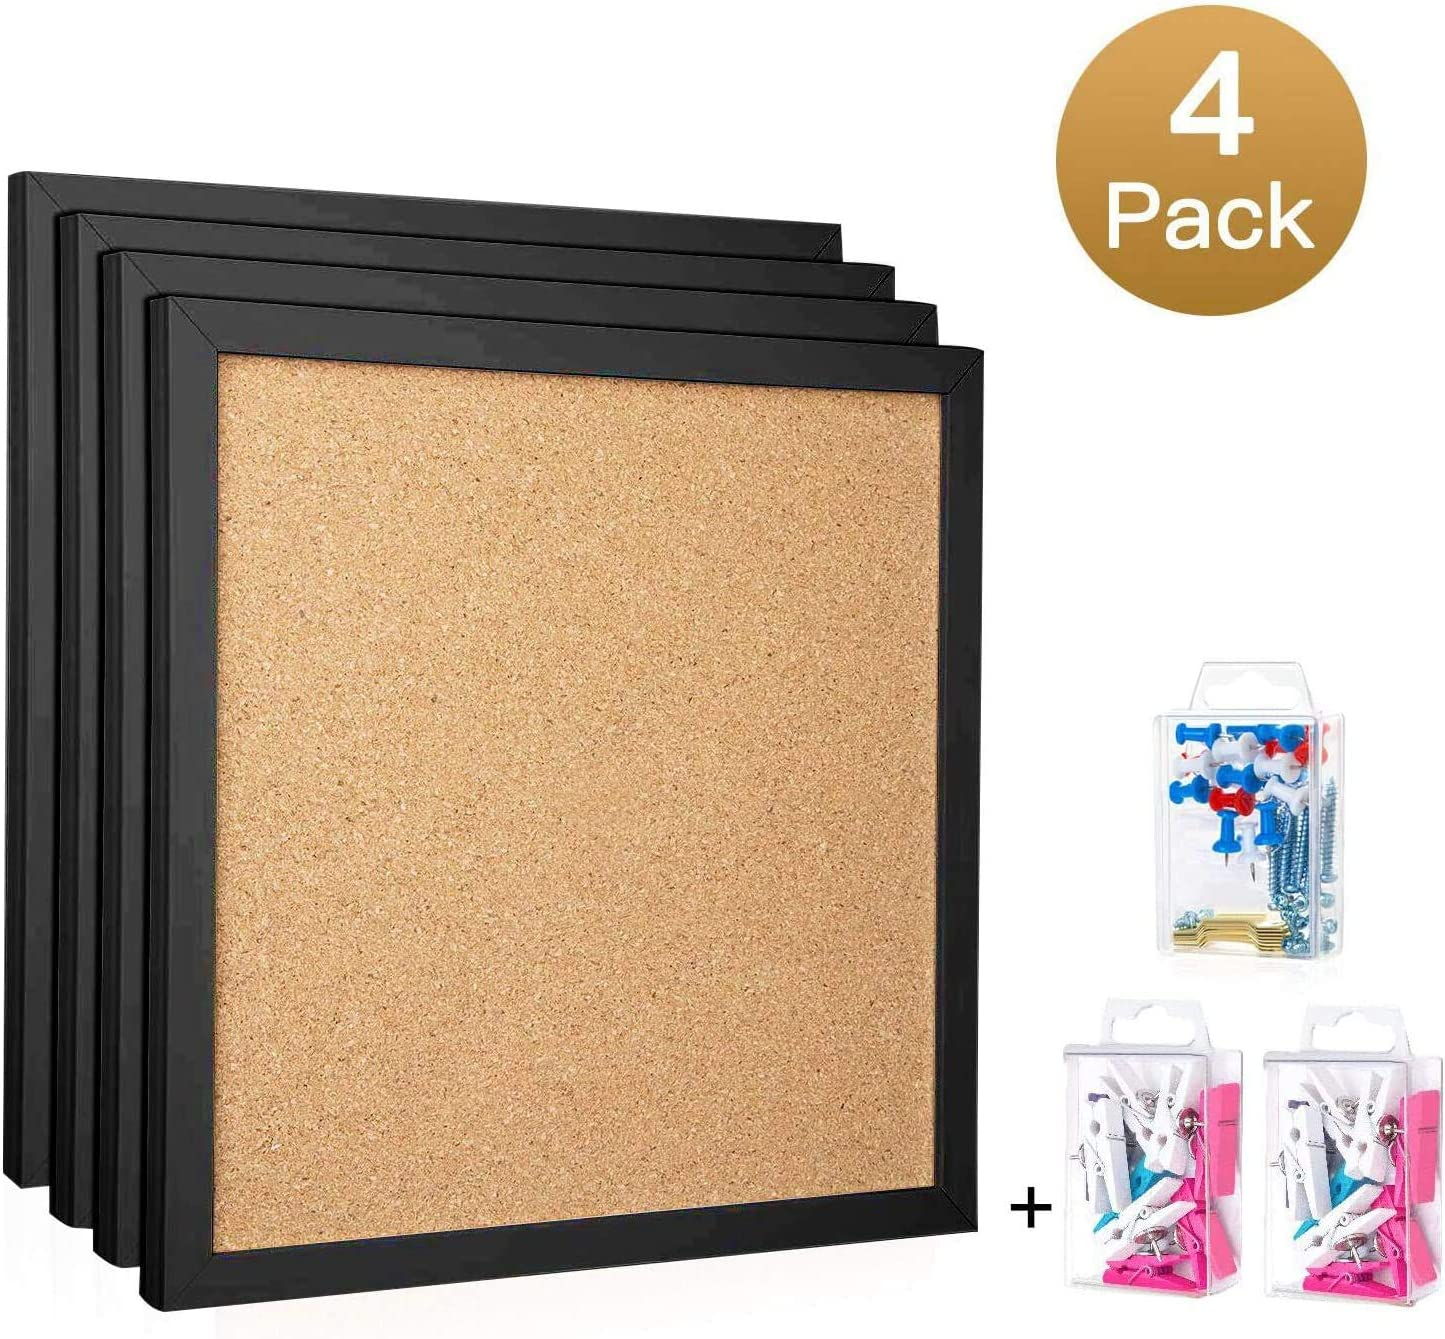 "HBlife Cork Board Bulletin Board 12""X 12"" Square Wall Tiles,Modern Black Framed Corkboard for School, Home & Office (Set Including 20 Push Pins,Hardware and Template)"